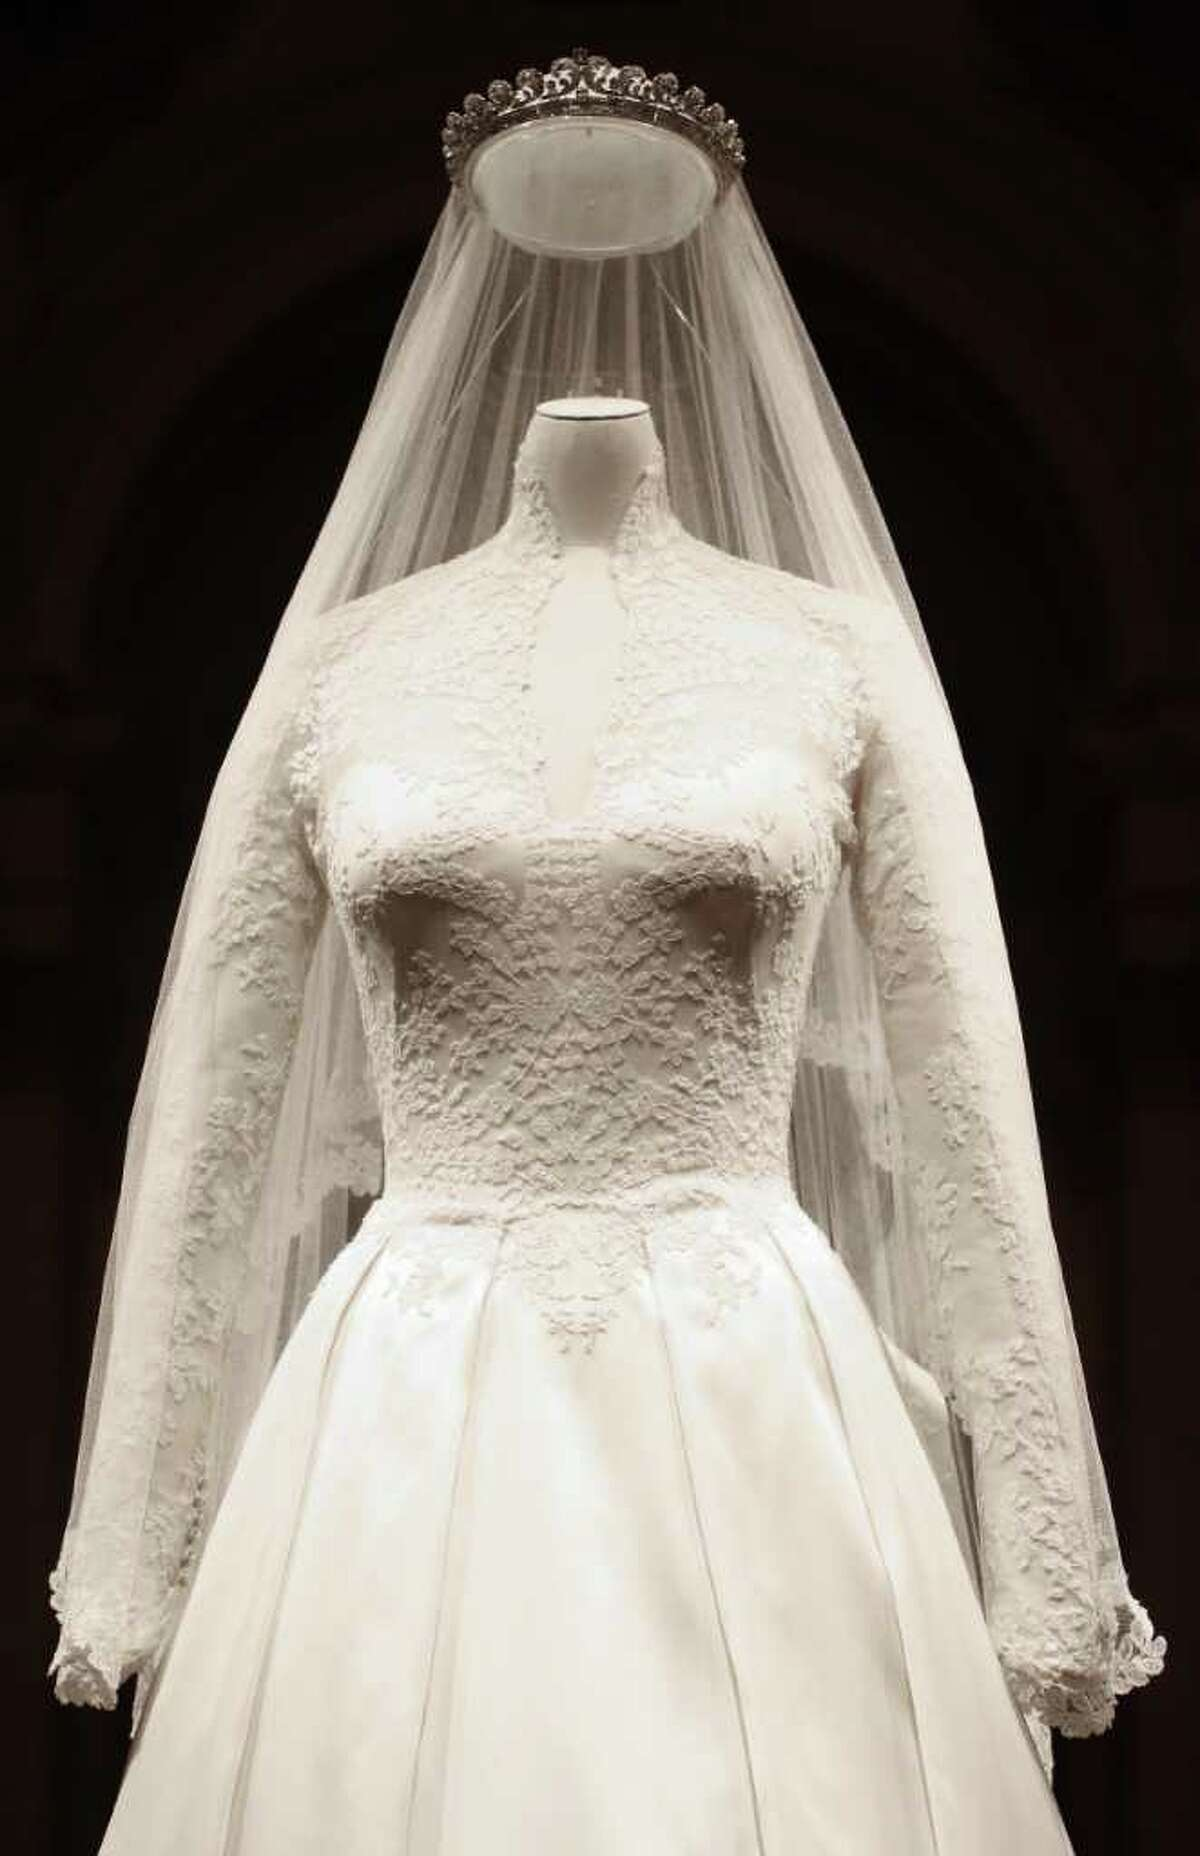 The Duchess of Cambridge's wedding dress, designed by Sarah Burton for Alexander McQueen, is seen in Buckingham Palace, London, Wednesday July 20, 2011, before going on display to the public during the palace's annual summer opening. The intricately decorated wedding dress received a rapturous reception. For months, it was fashion's best-kept secret. Even the team of embroiderers at Hampton Court Palace working on the gown did not know the identity of the designer until shortly before the public announcement. But as soon as the Duchess appeared leaving the Goring Hotel and then entering Westminster Abbey on her wedding day on April 29, the secret was out. The bridal gown featured lace appliqua floral detail and was made of ivory and white satin gazar, with a skirt that resembled